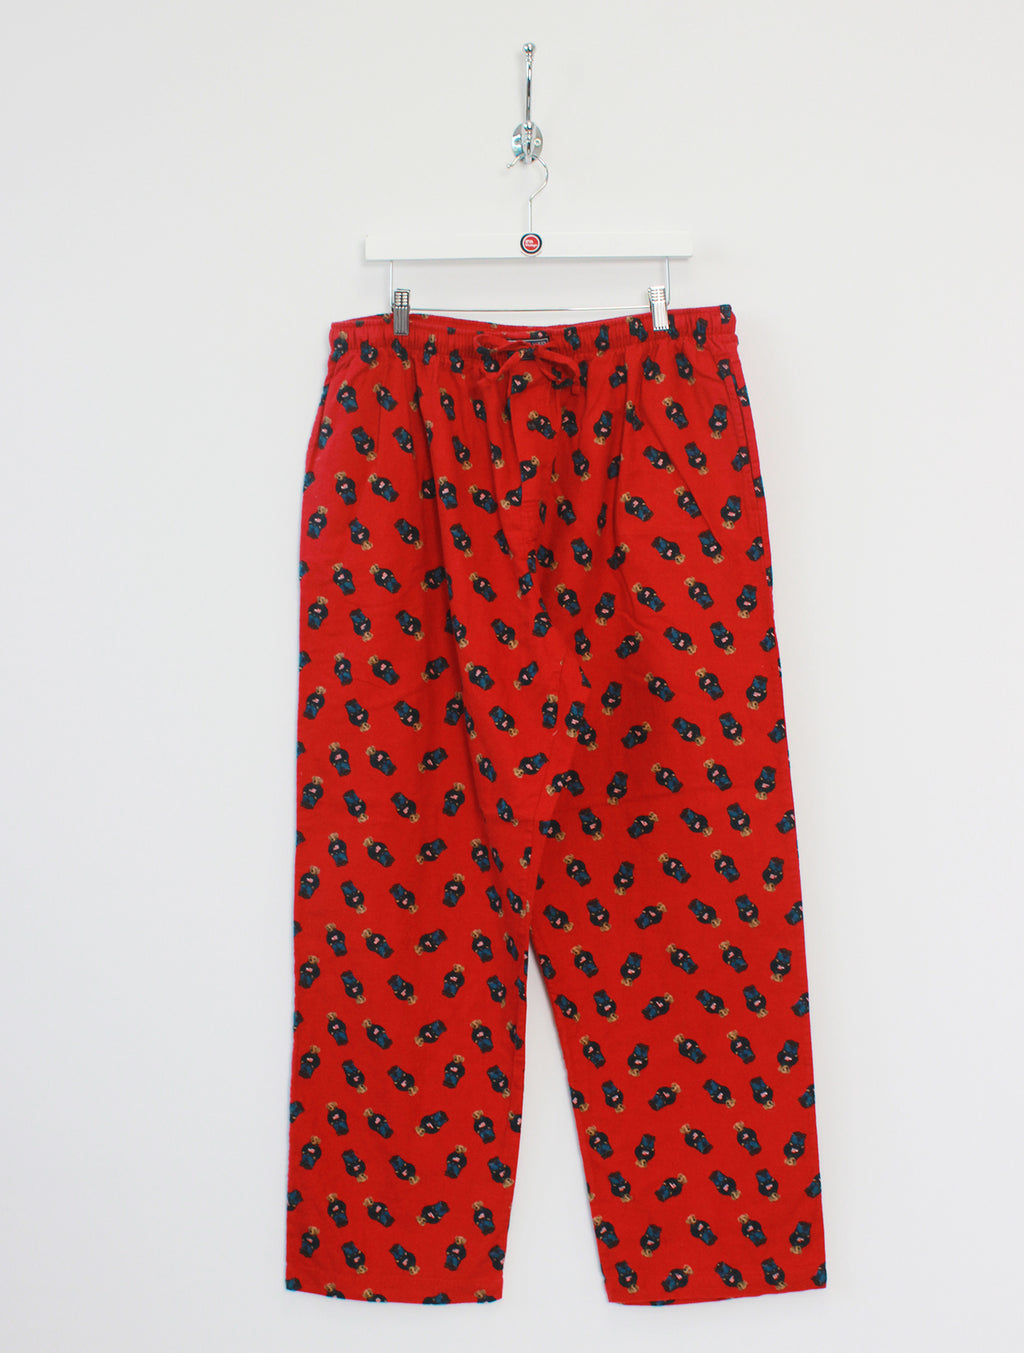 Ralph Lauren Polo Bear Lounge Pants (M)